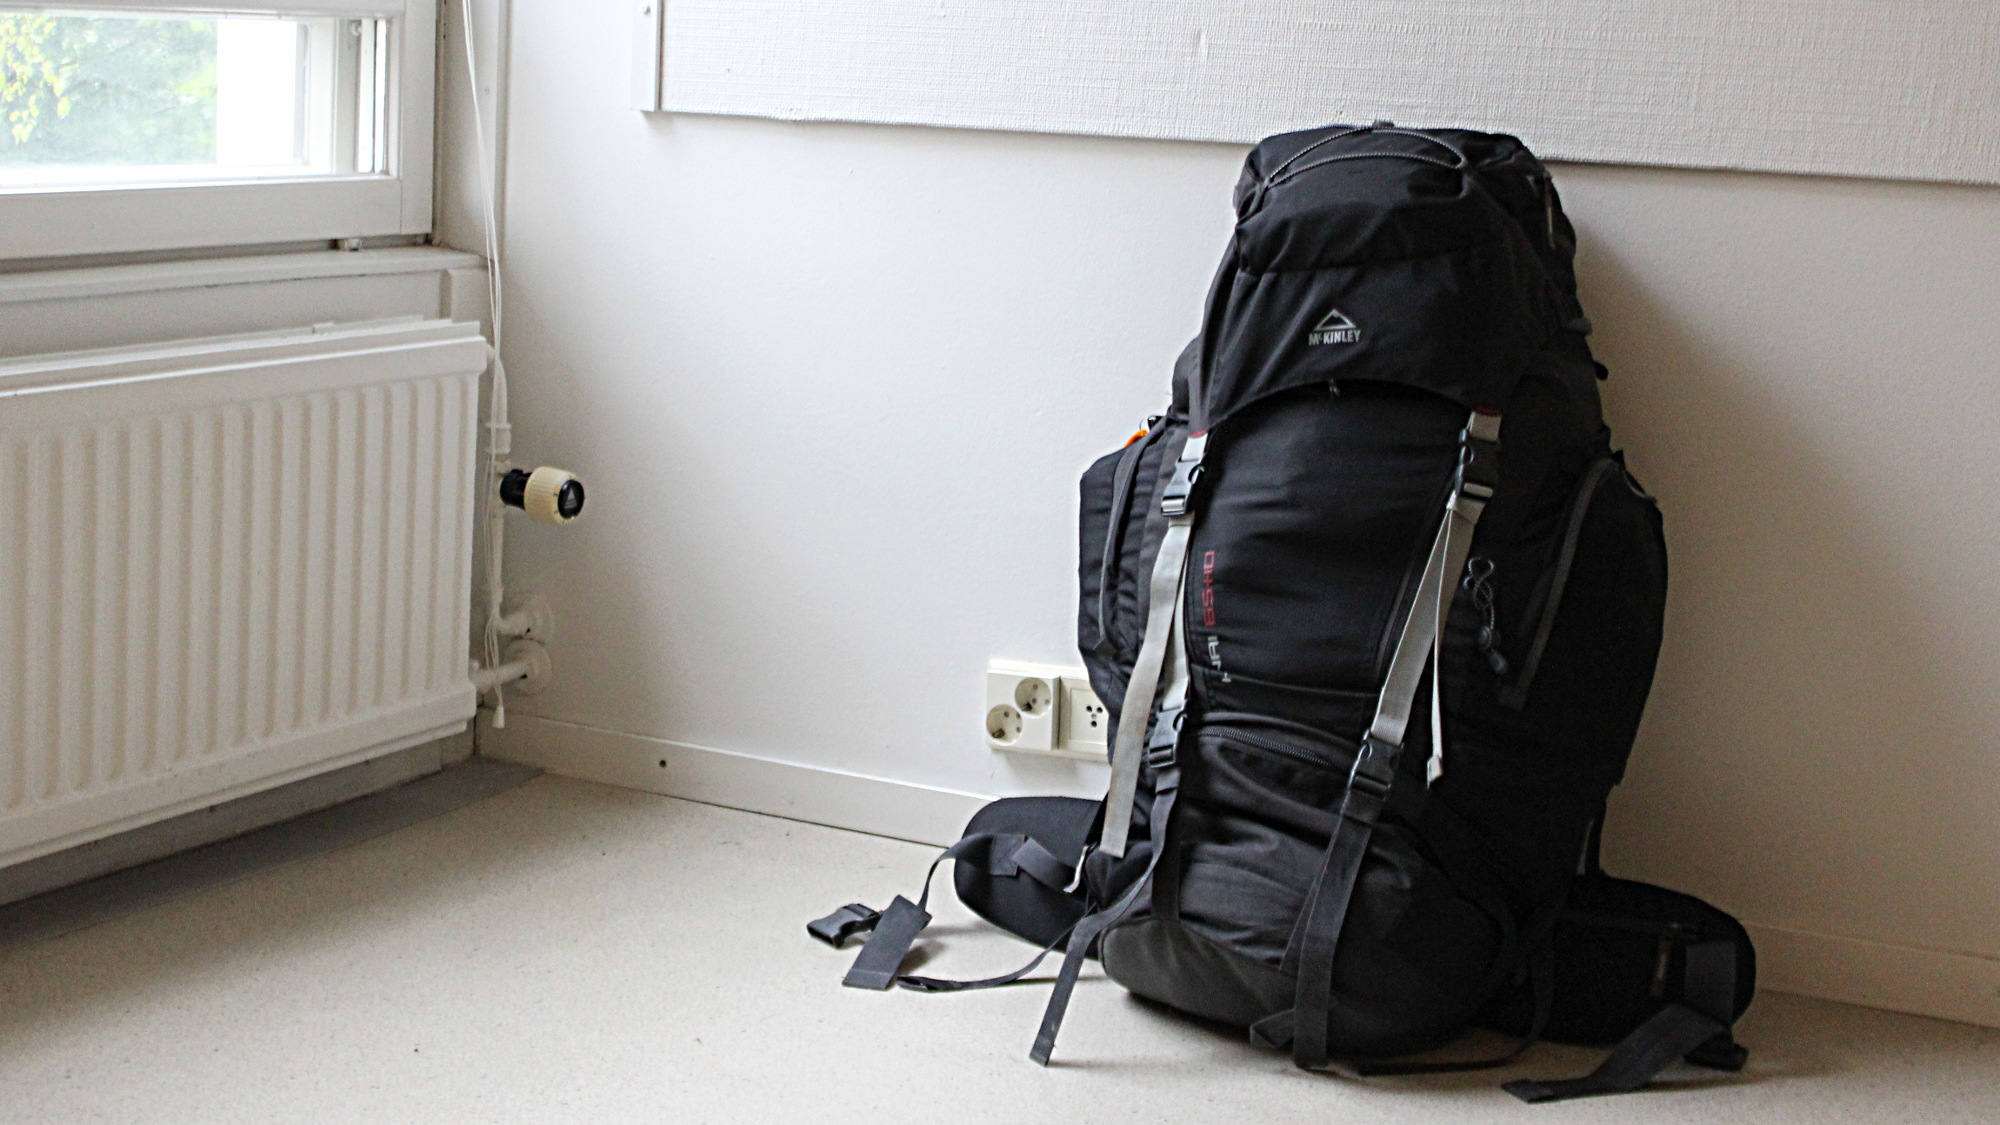 How to go on a trip around the world? Step one is packing. Pictured is a packed black McKinley backpack in an empty apartment.